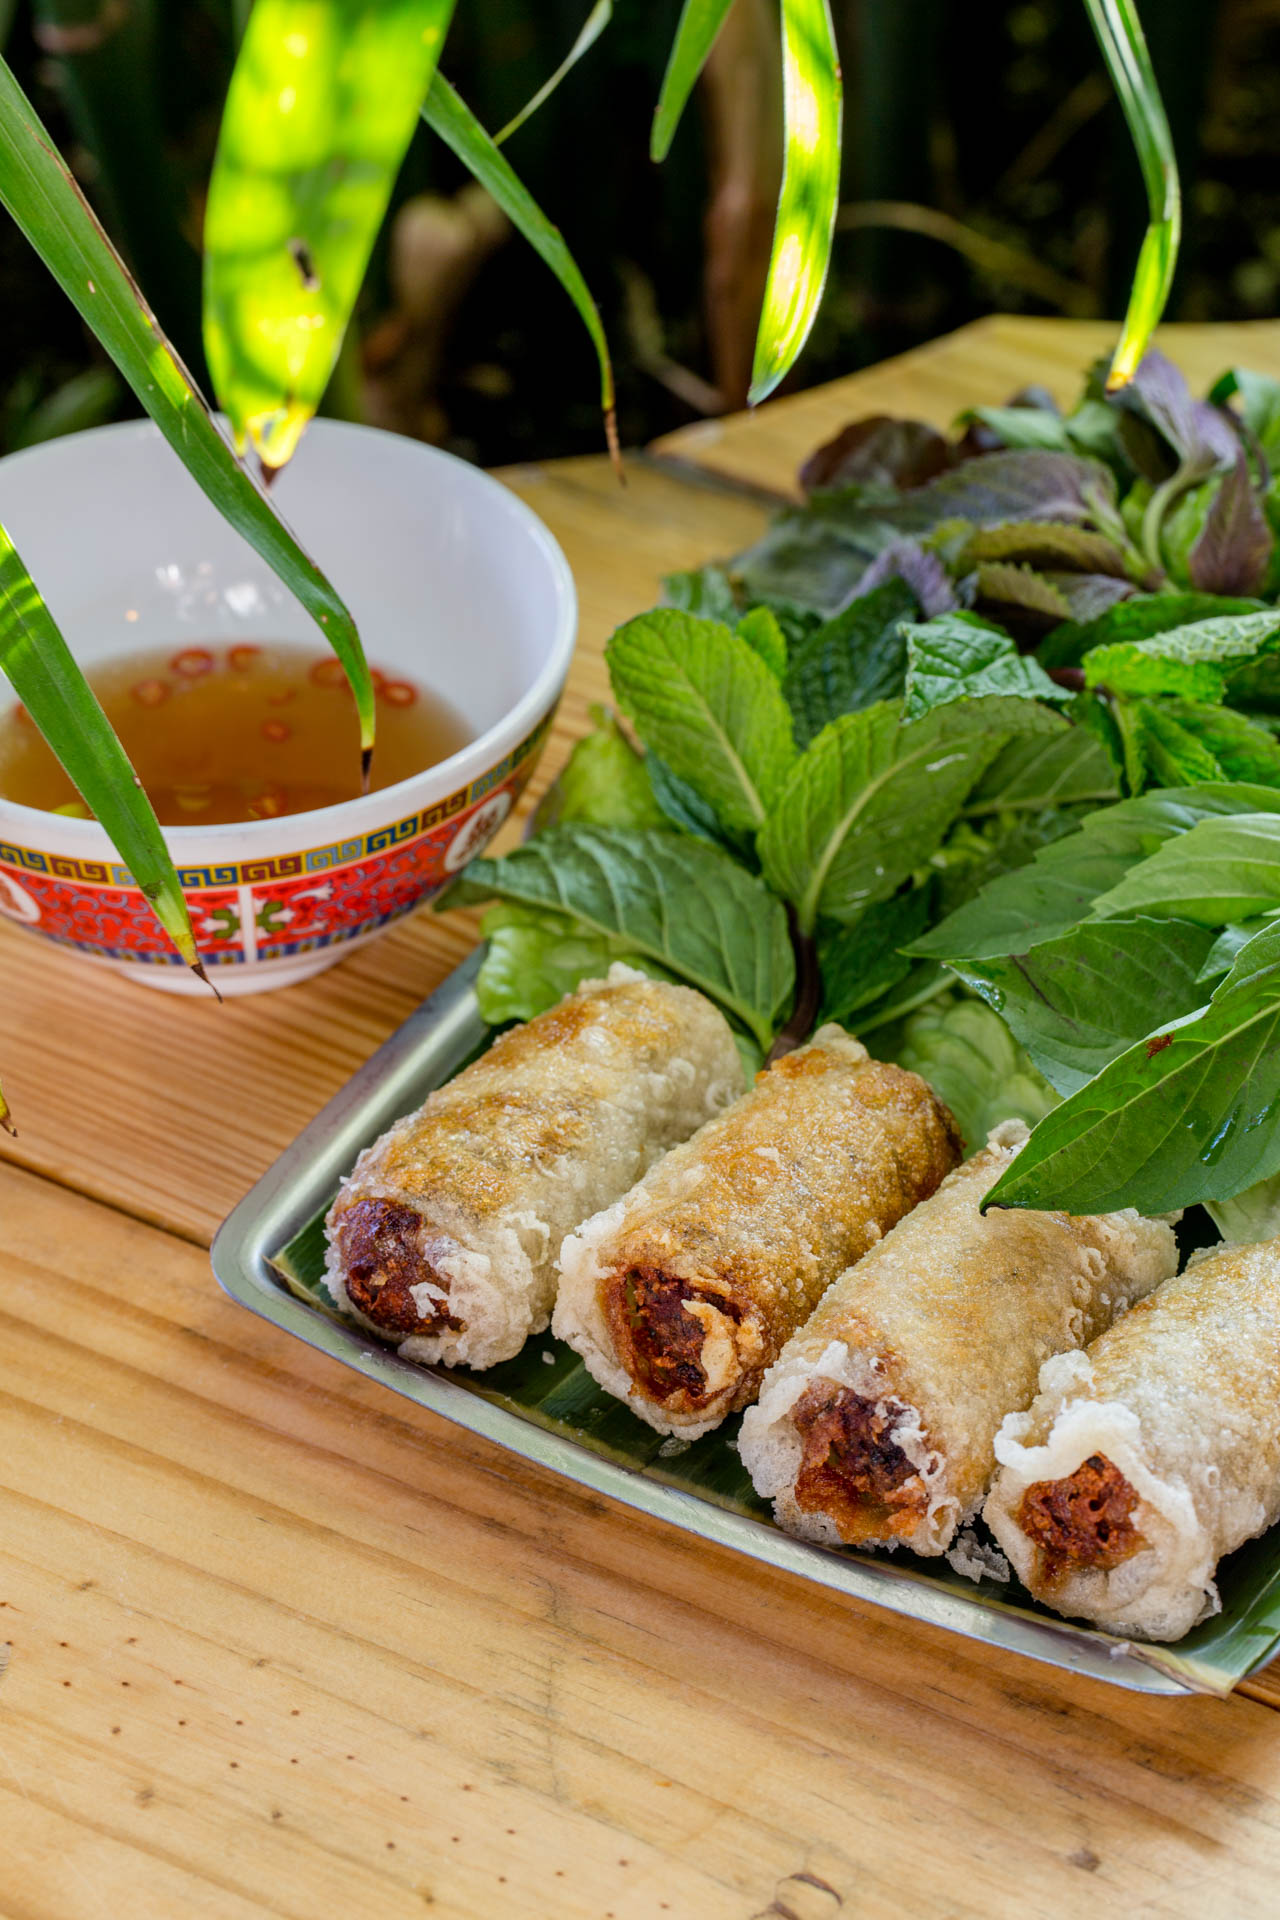 I think these are called c hả giò, spring rolls.